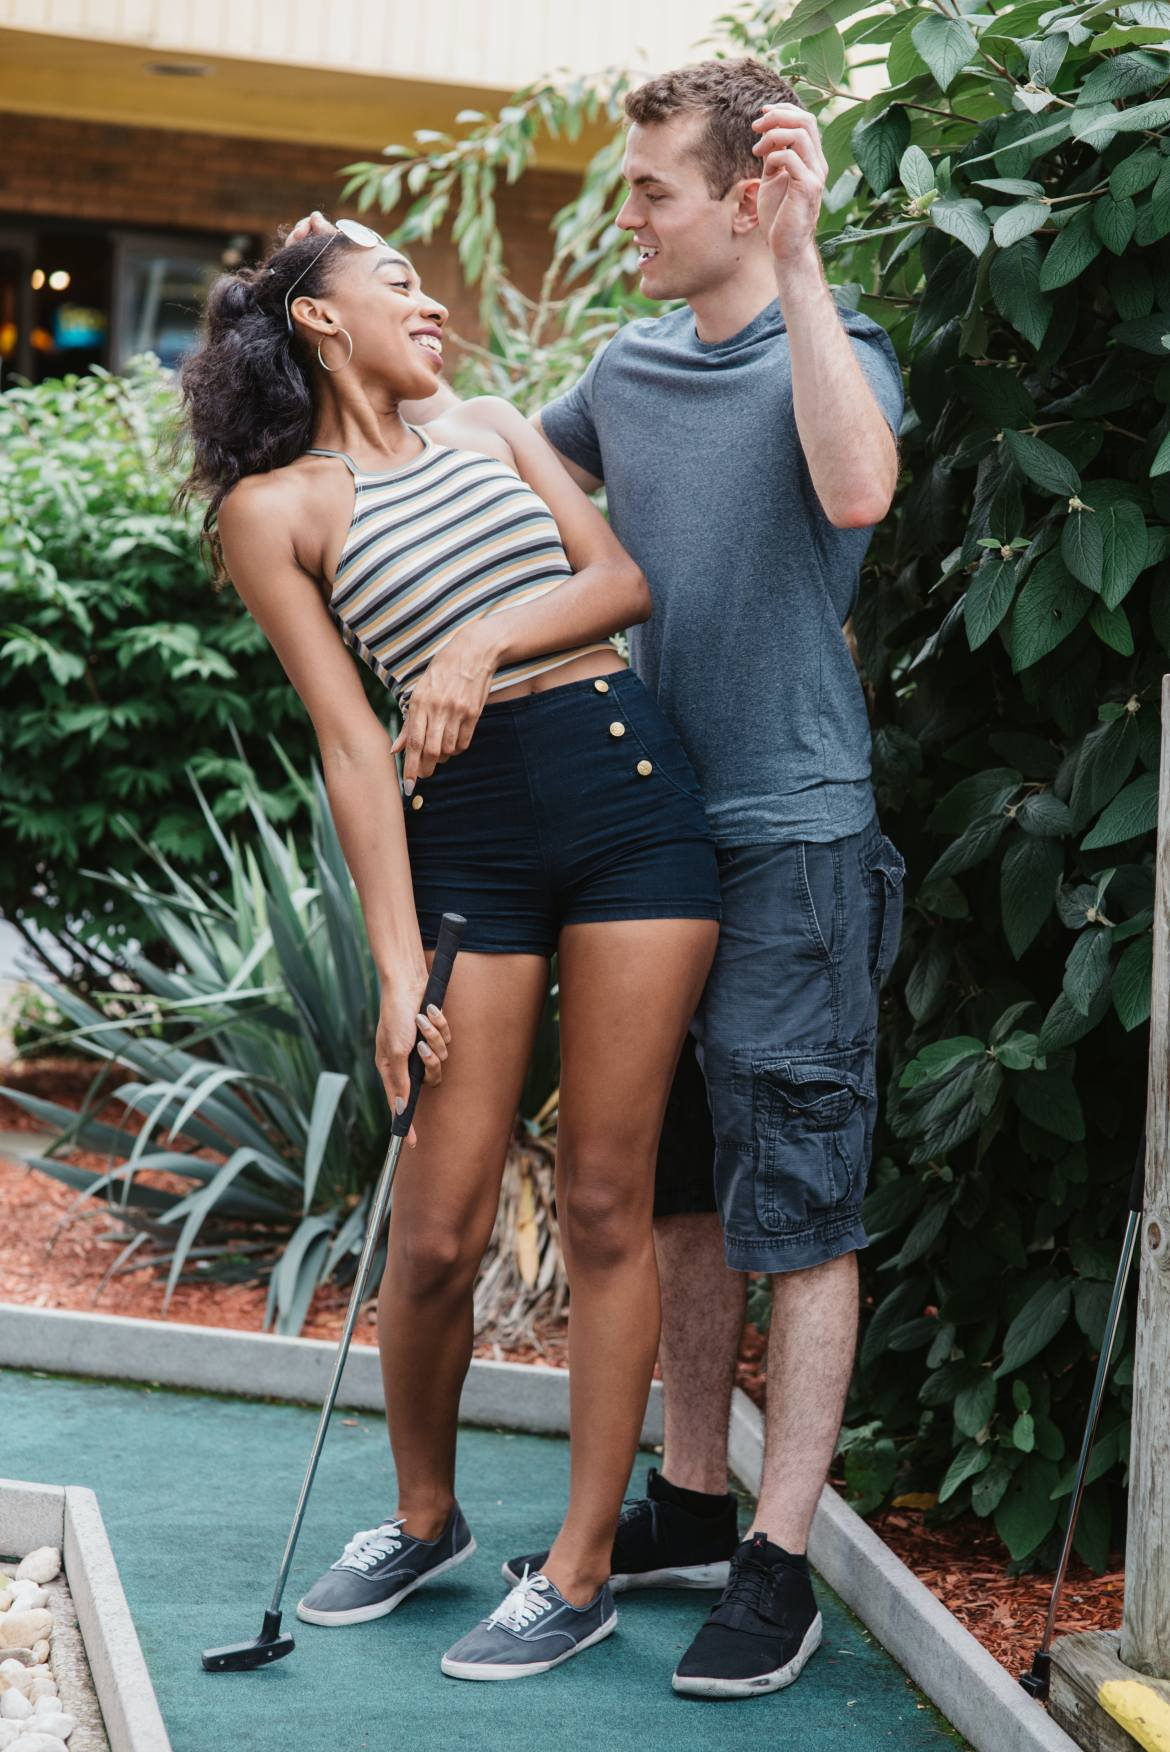 A young couple laughs while playing mini golf in the height of summer.